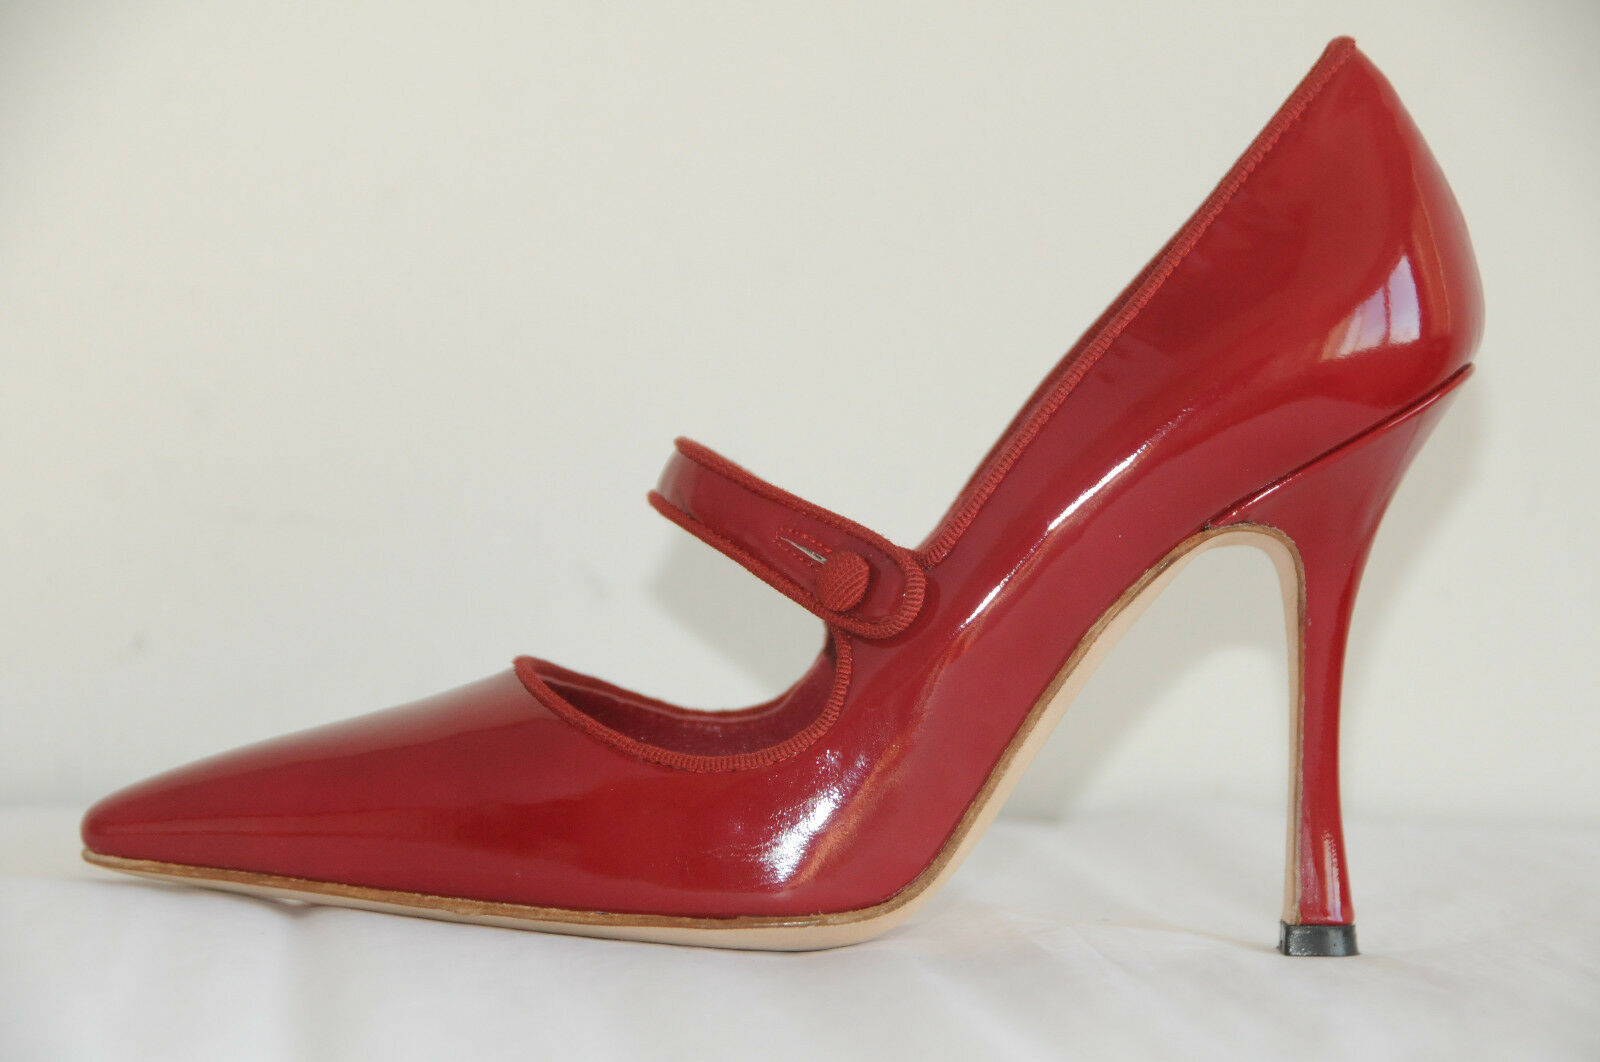 745 NEW MANOLO BLAHNIK Campari Mary Jane RED Patent Leather Pump SHOES 40.5